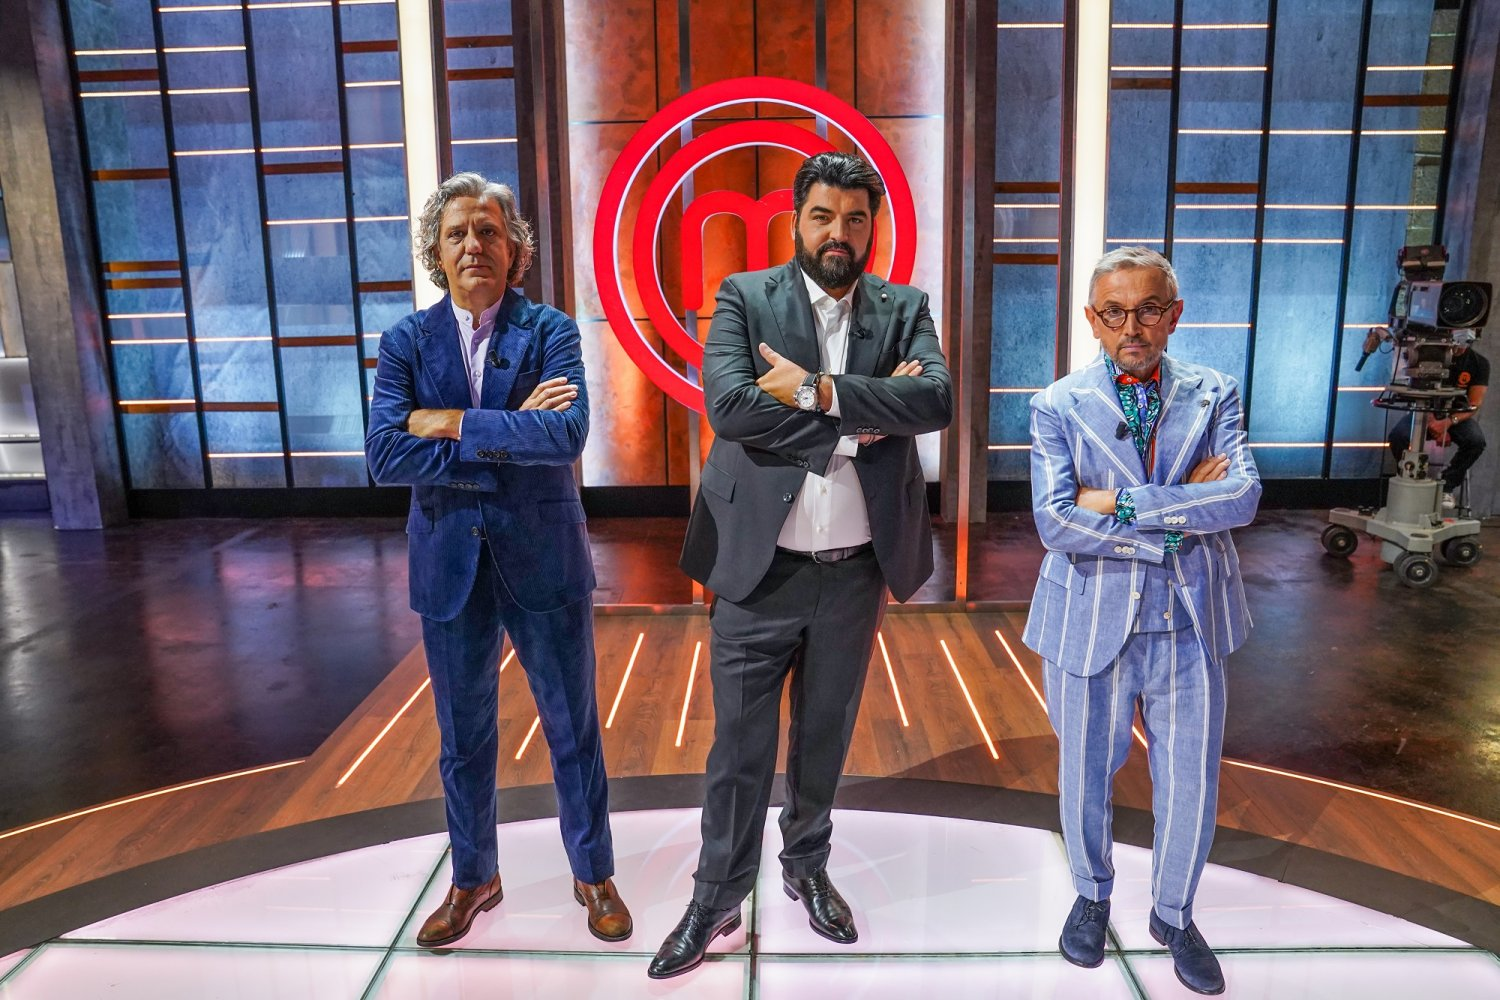 SkyWeek, 13 - 19 Dicembre 2020 canali Sky e in streaming NOW TV